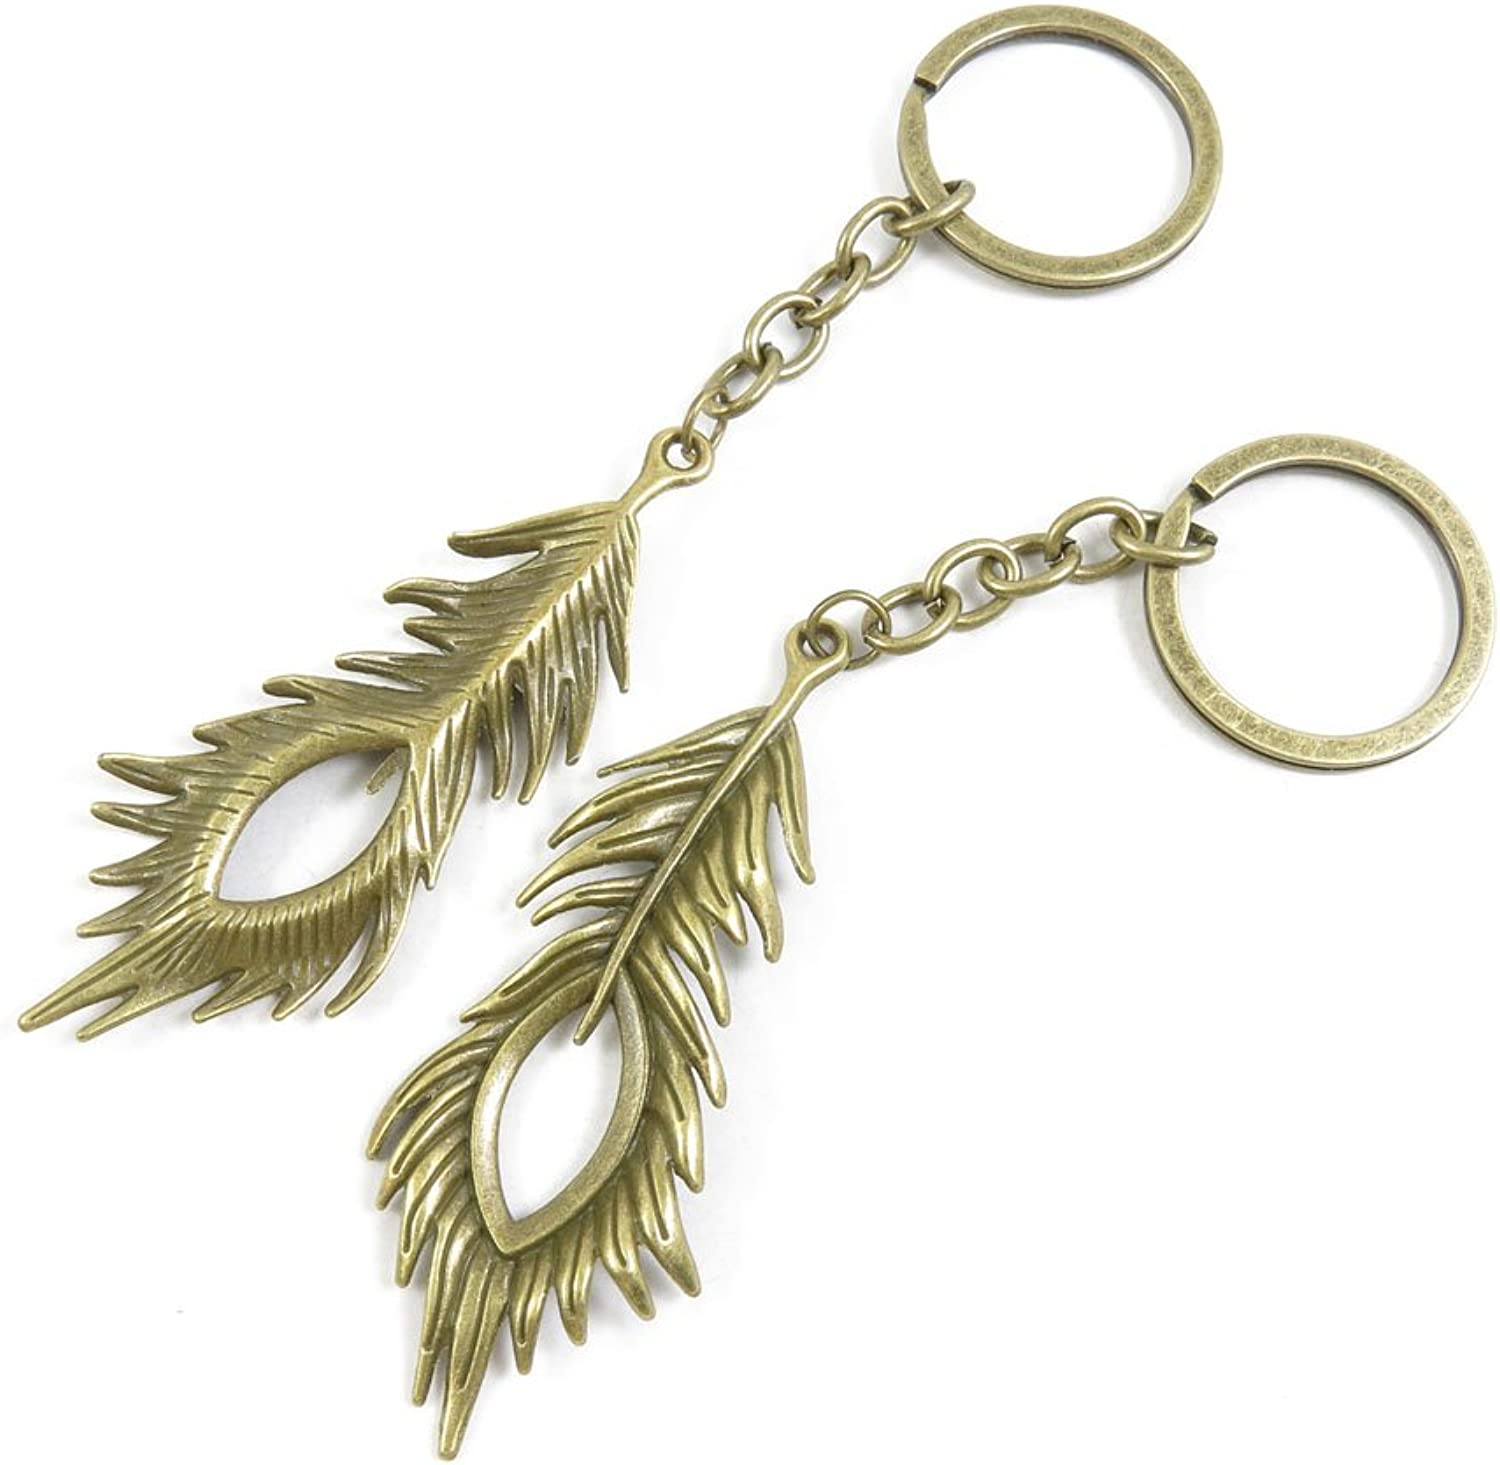 120 Pieces Fashion Jewelry Keyring Keychain Door Car Key Tag Ring Chain Supplier Supply Wholesale Bulk Lots H6OM5 Peacock Feathers